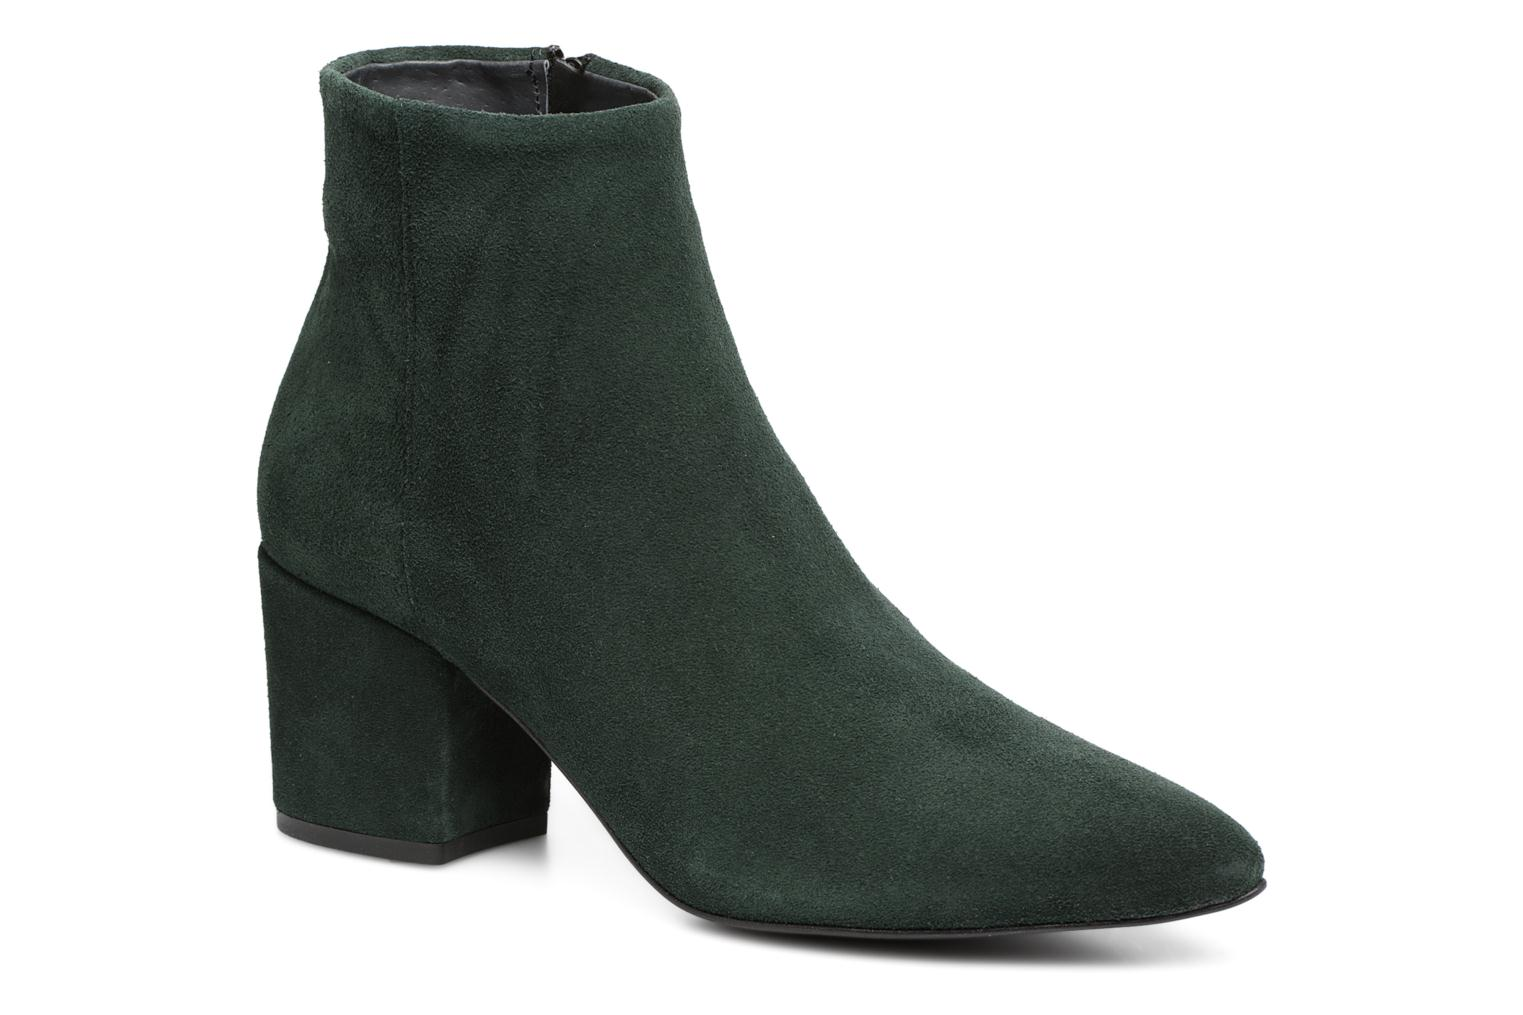 Vero Moda ASTRID LEATHER BOOT Verde owqyvlCAd